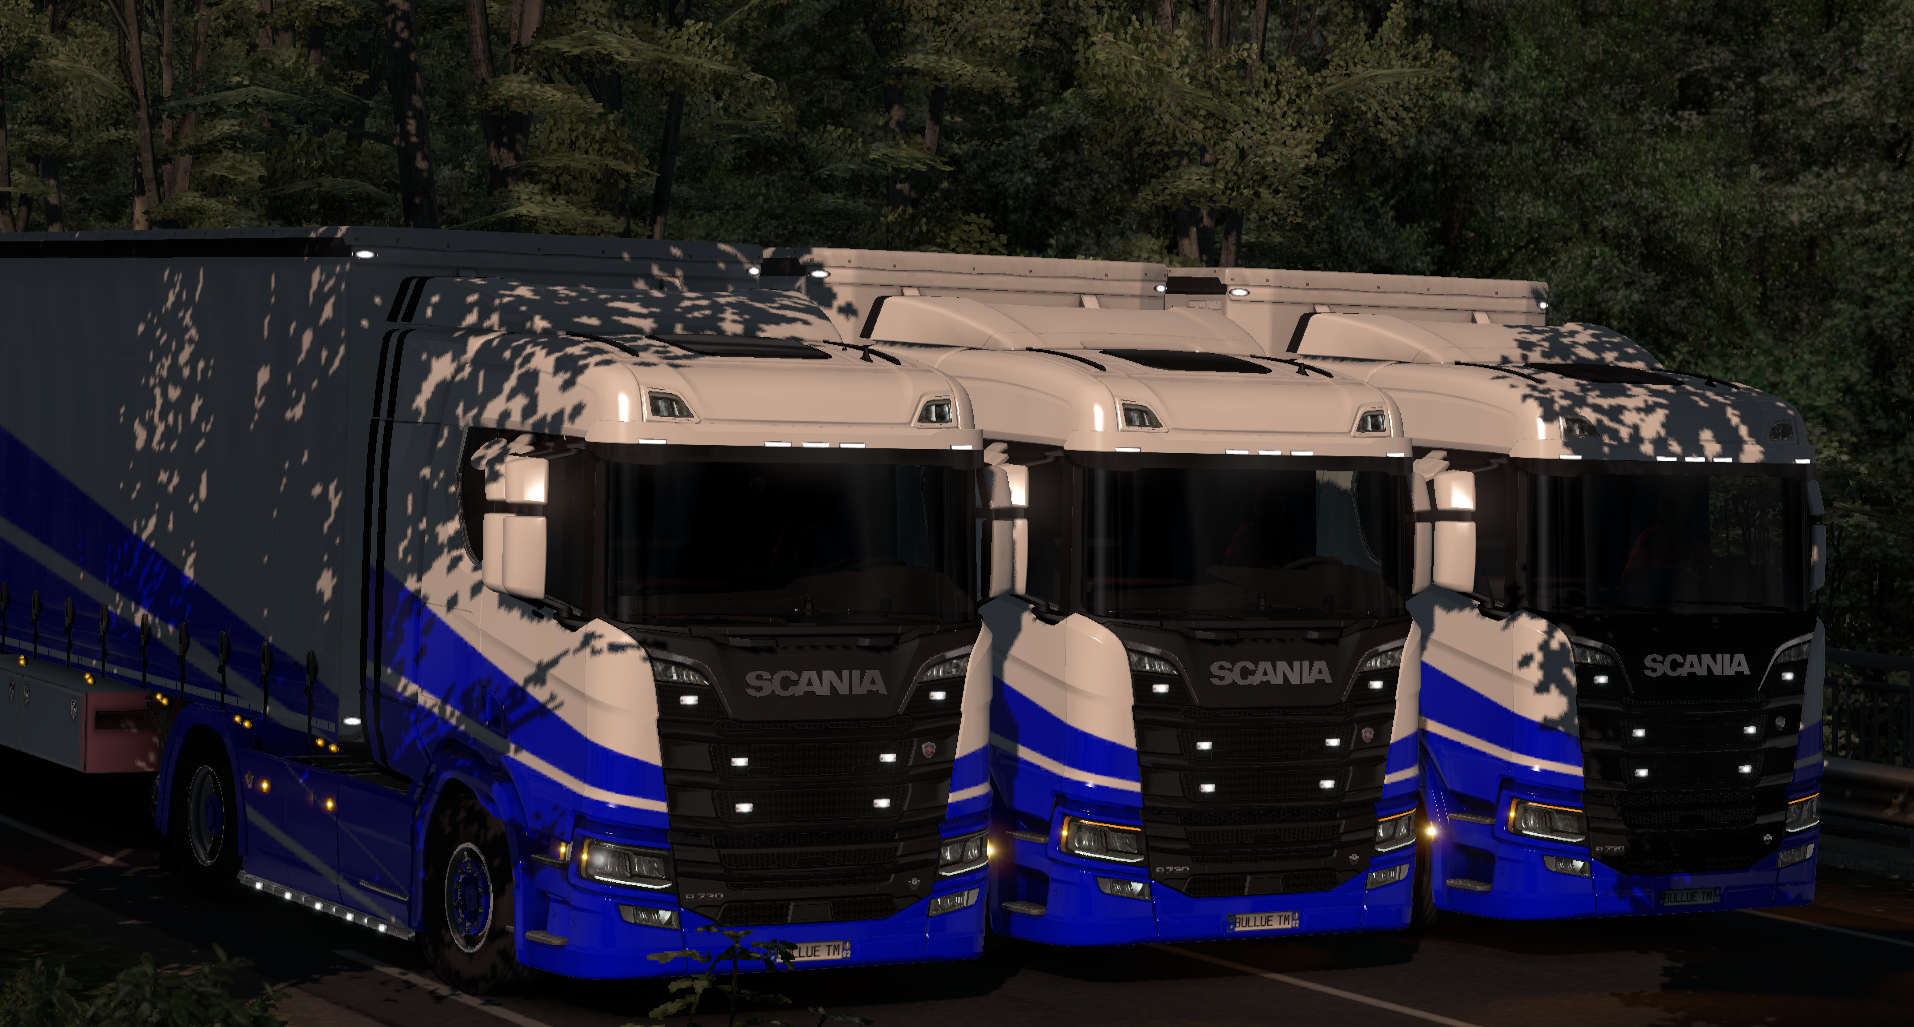 ets2_20190714_015620_00.png